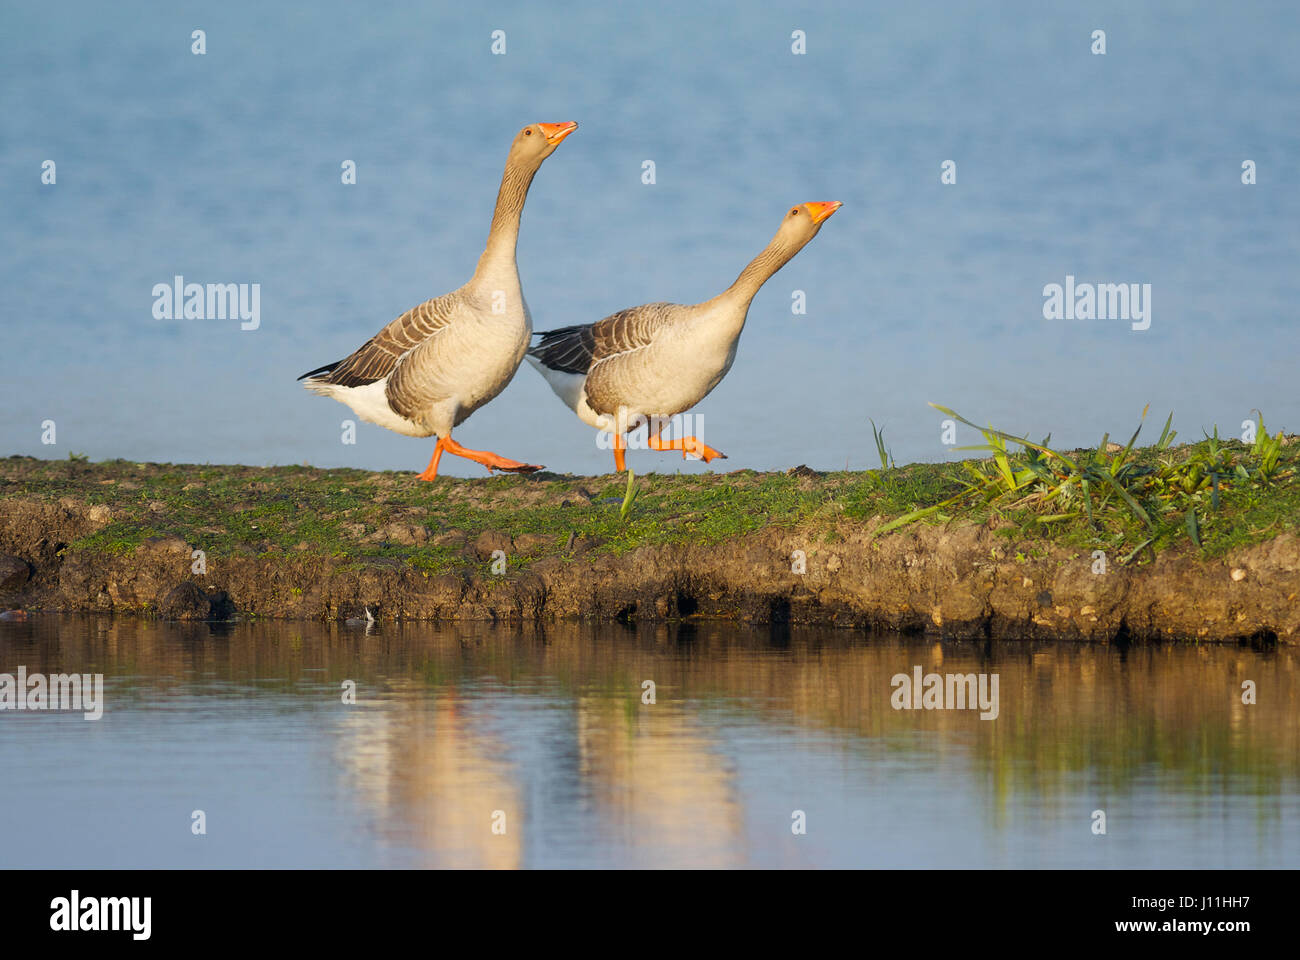 Greylag geese (anser anser) pair courting - Stock Image